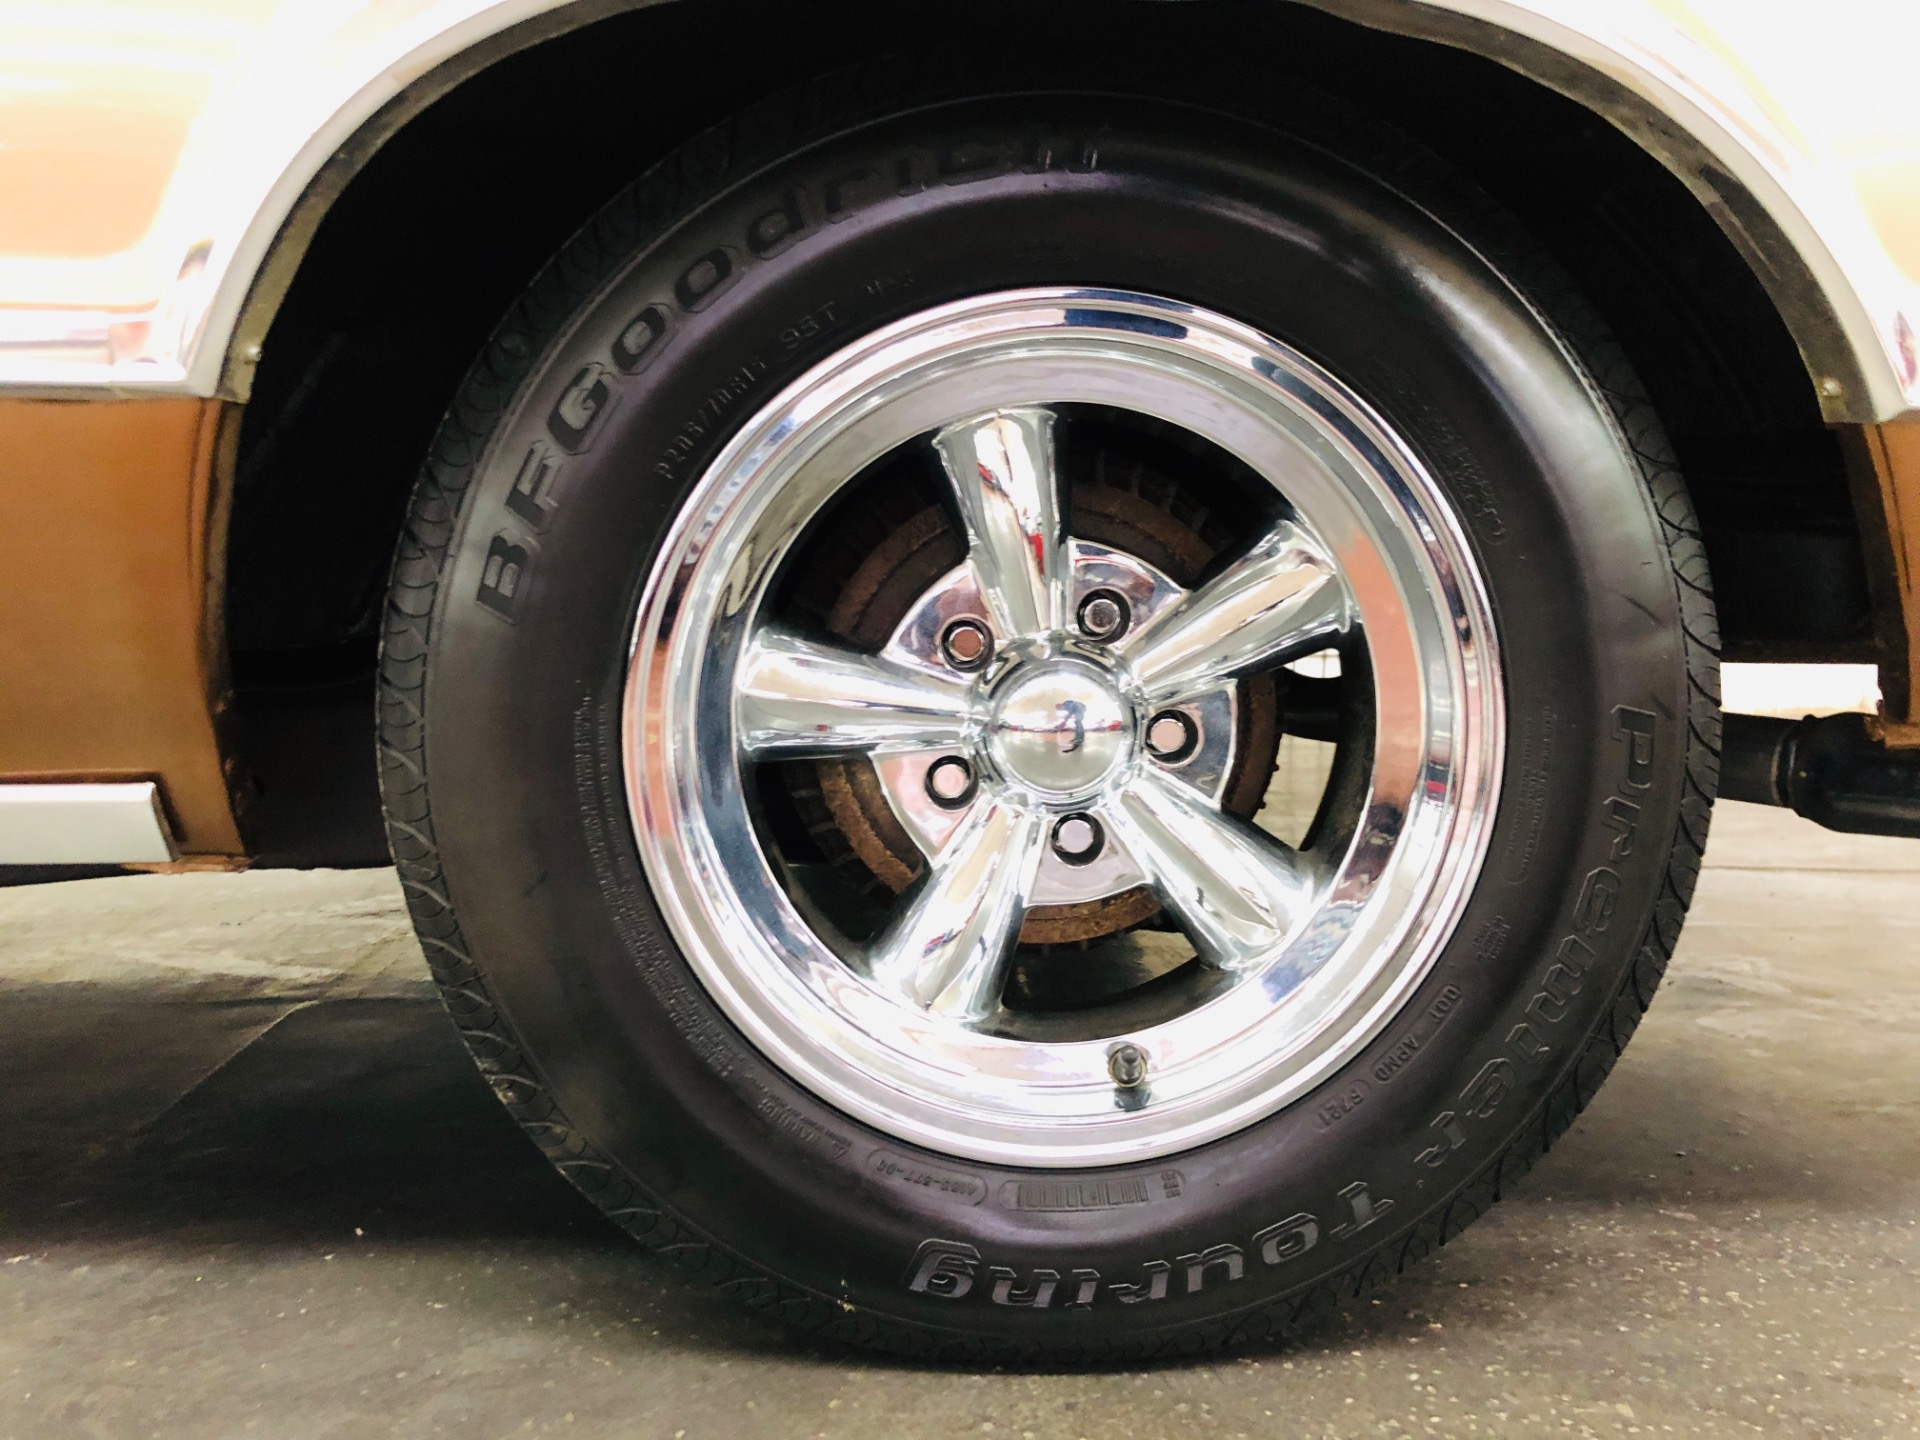 Used 1985 Chevrolet El Camino - CLEAN SOUTHERN VEHICLE - NEW WHEELS AND TIRES - SEE VIDEO | Mundelein, IL